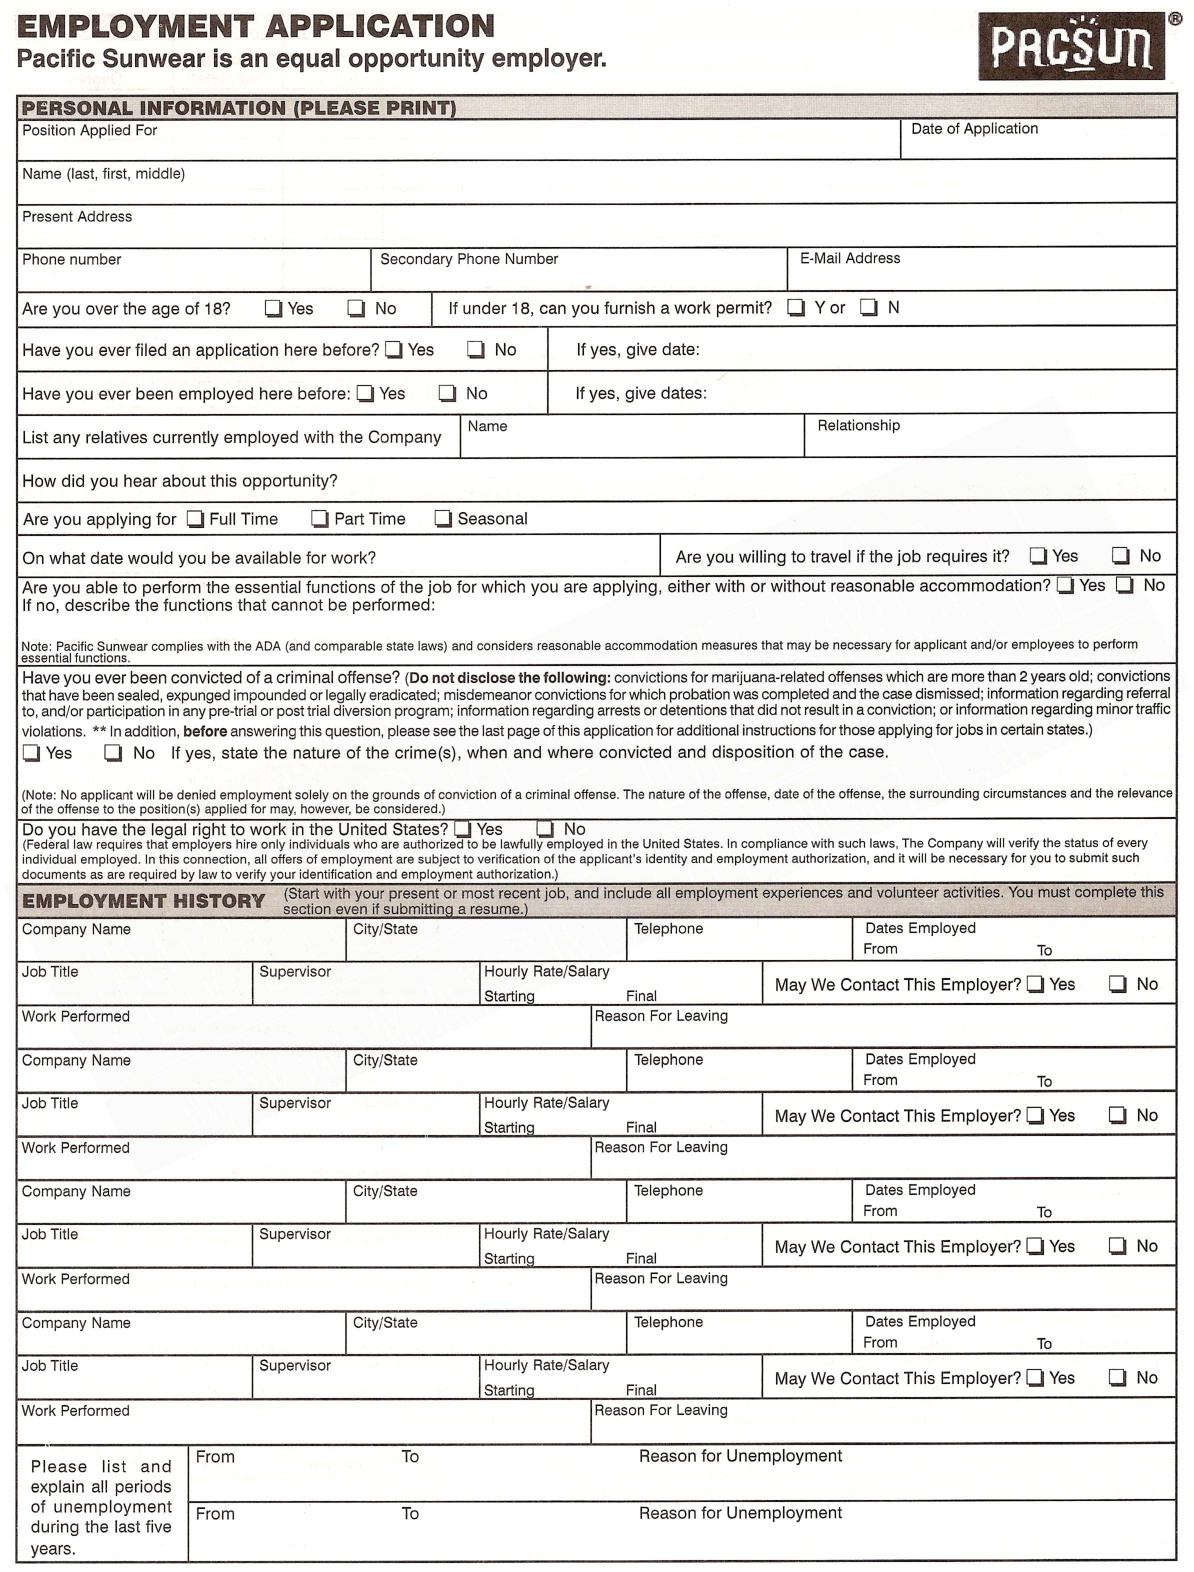 pacsun application pacsun employment application form printable pacsun application pacsun employment application form printable